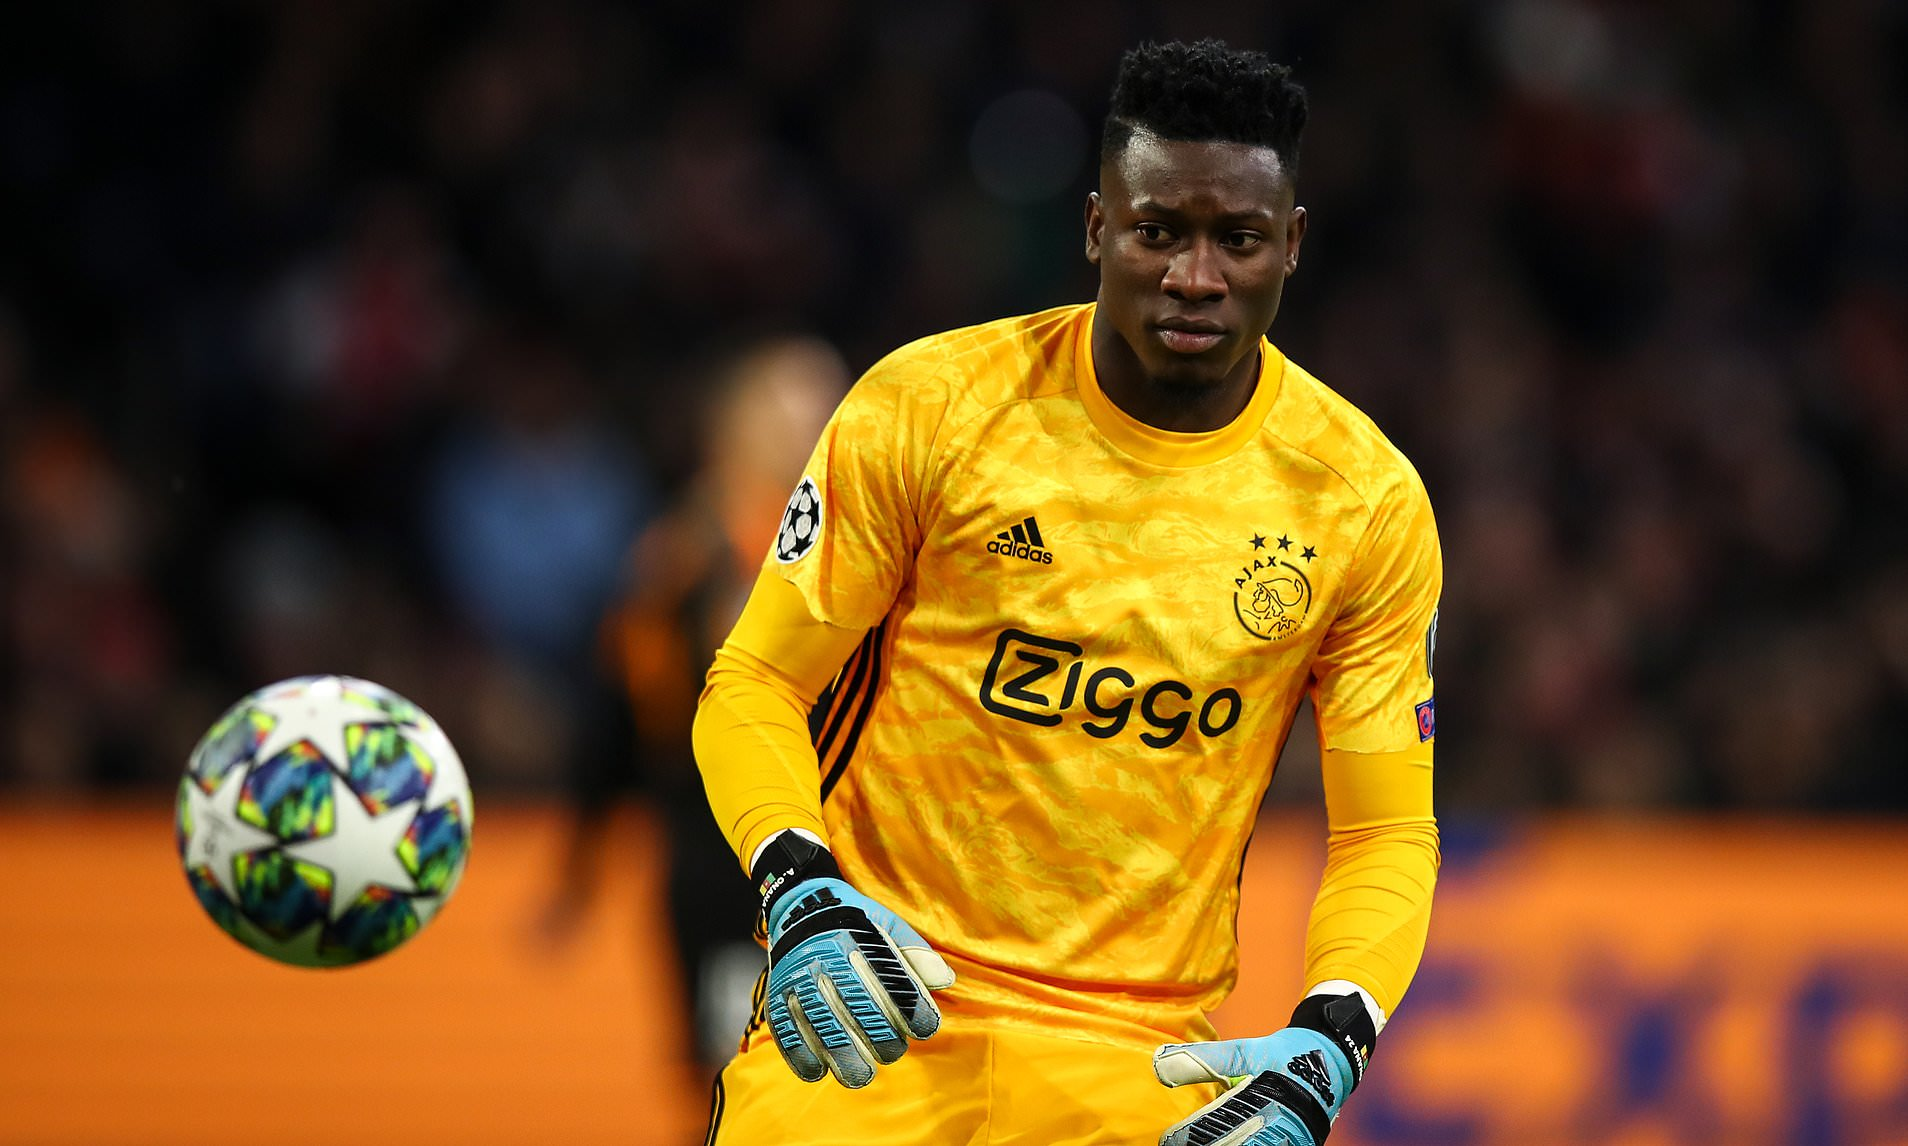 """A """"lightening"""" save-Andre Onana helps bring electricity to his maternal village - THE SPORTS ROOM"""